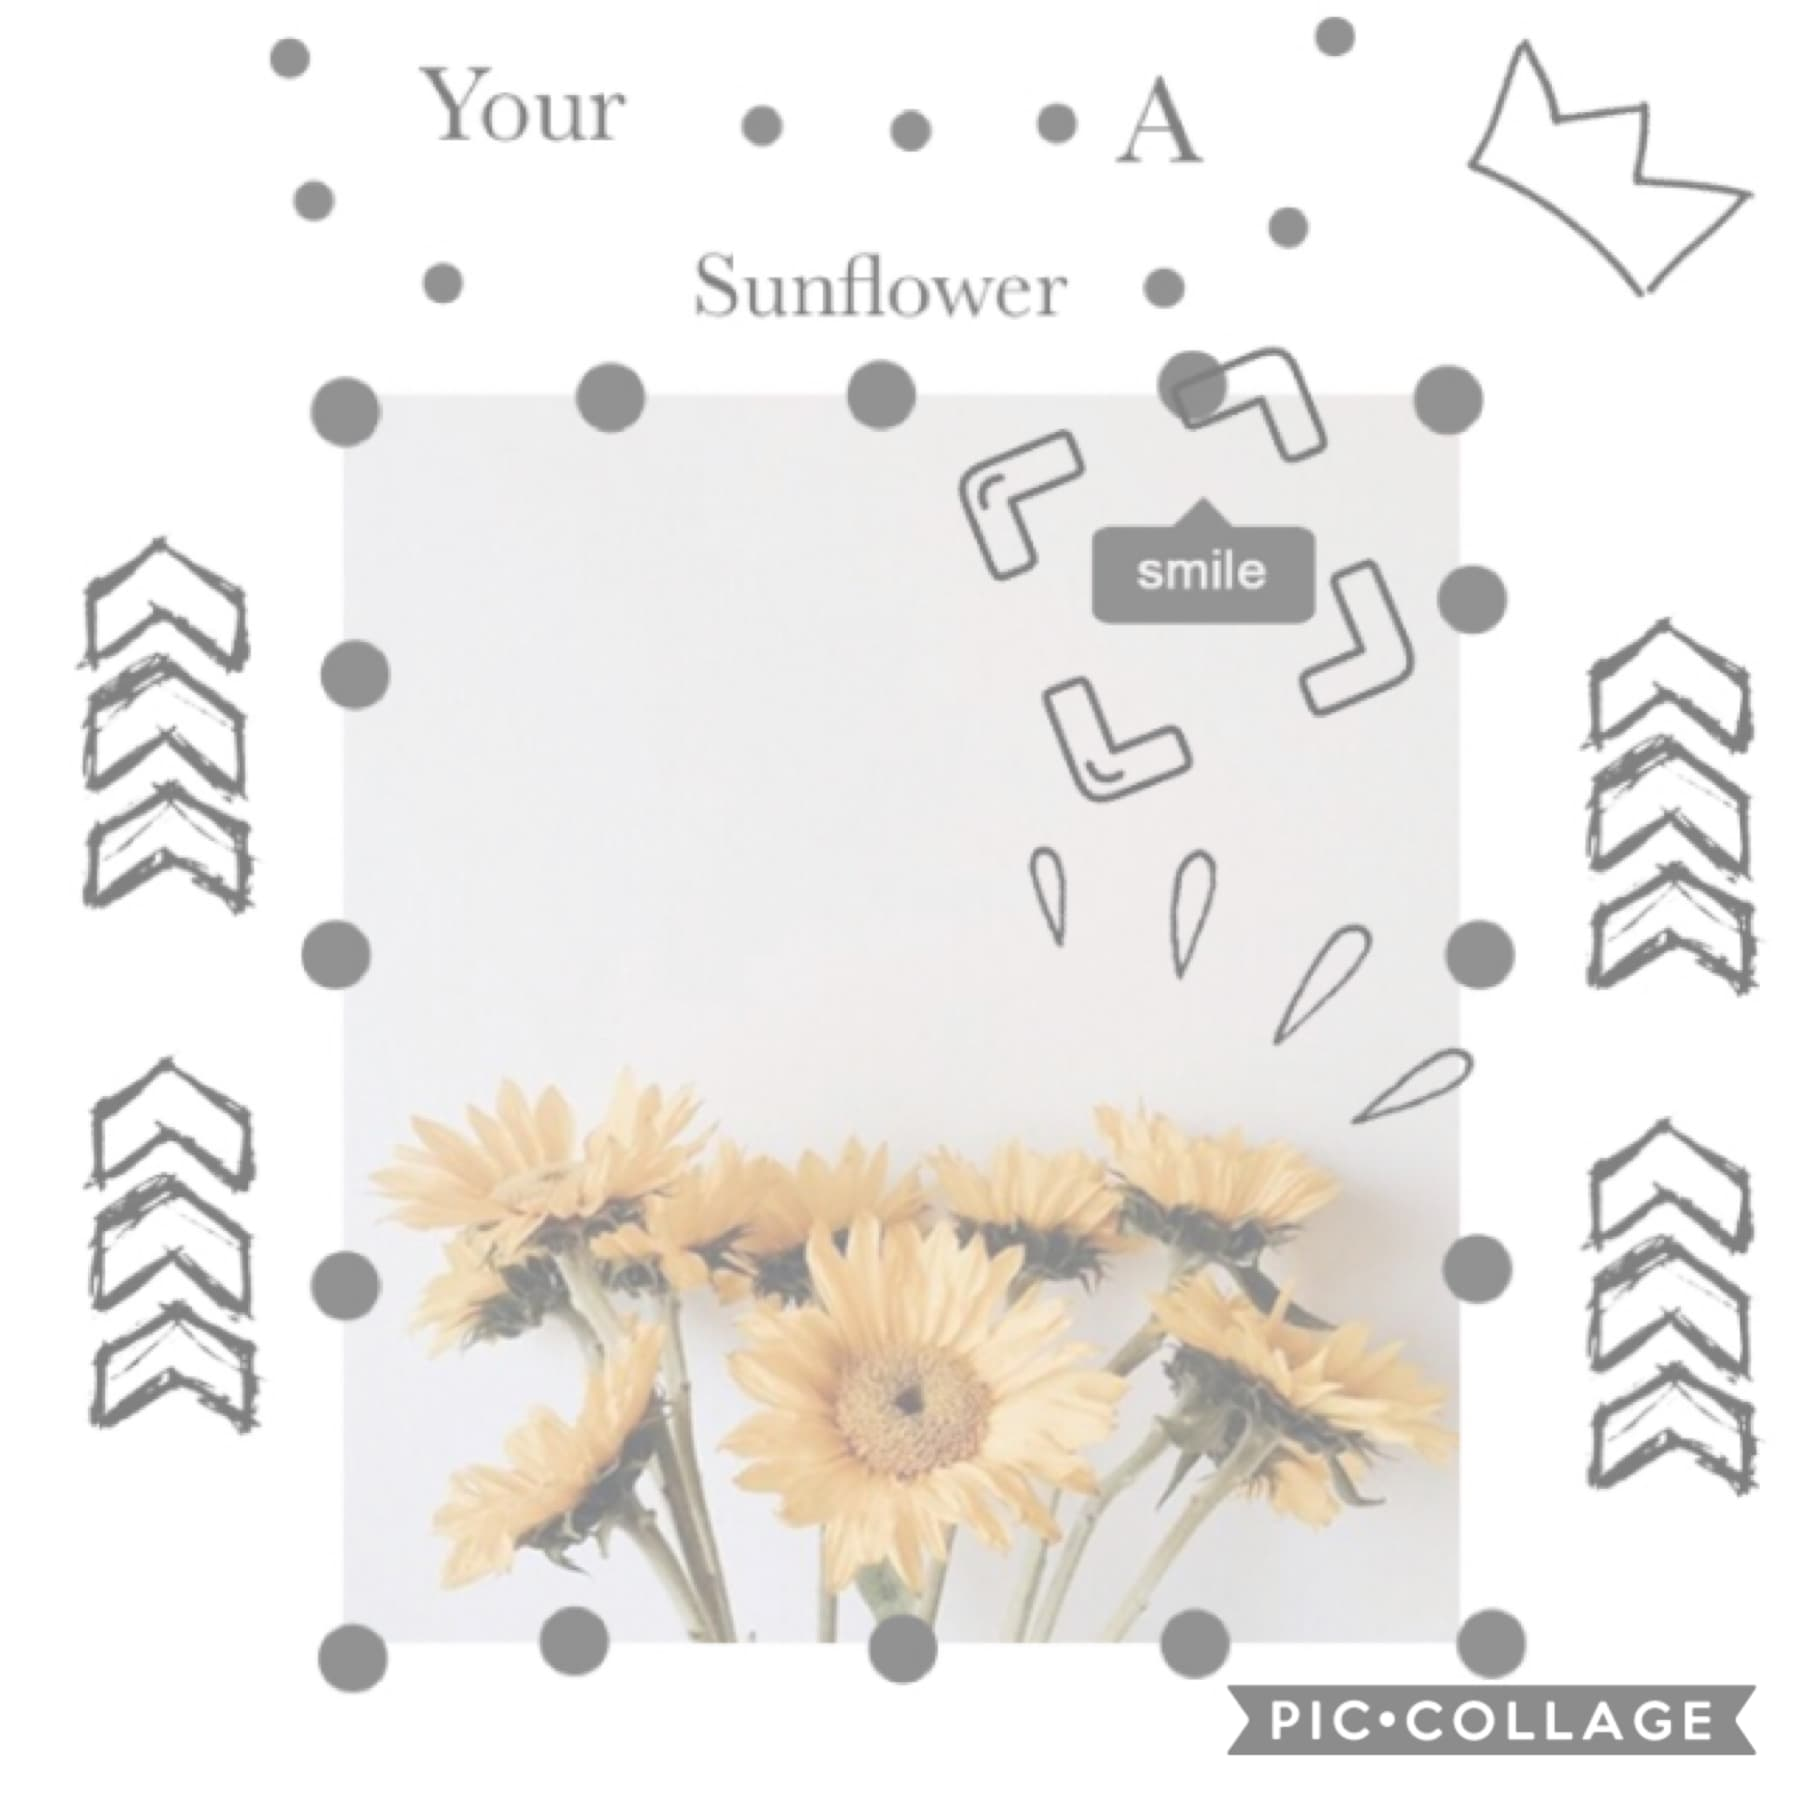 Just a simple sunflower collage 🌻